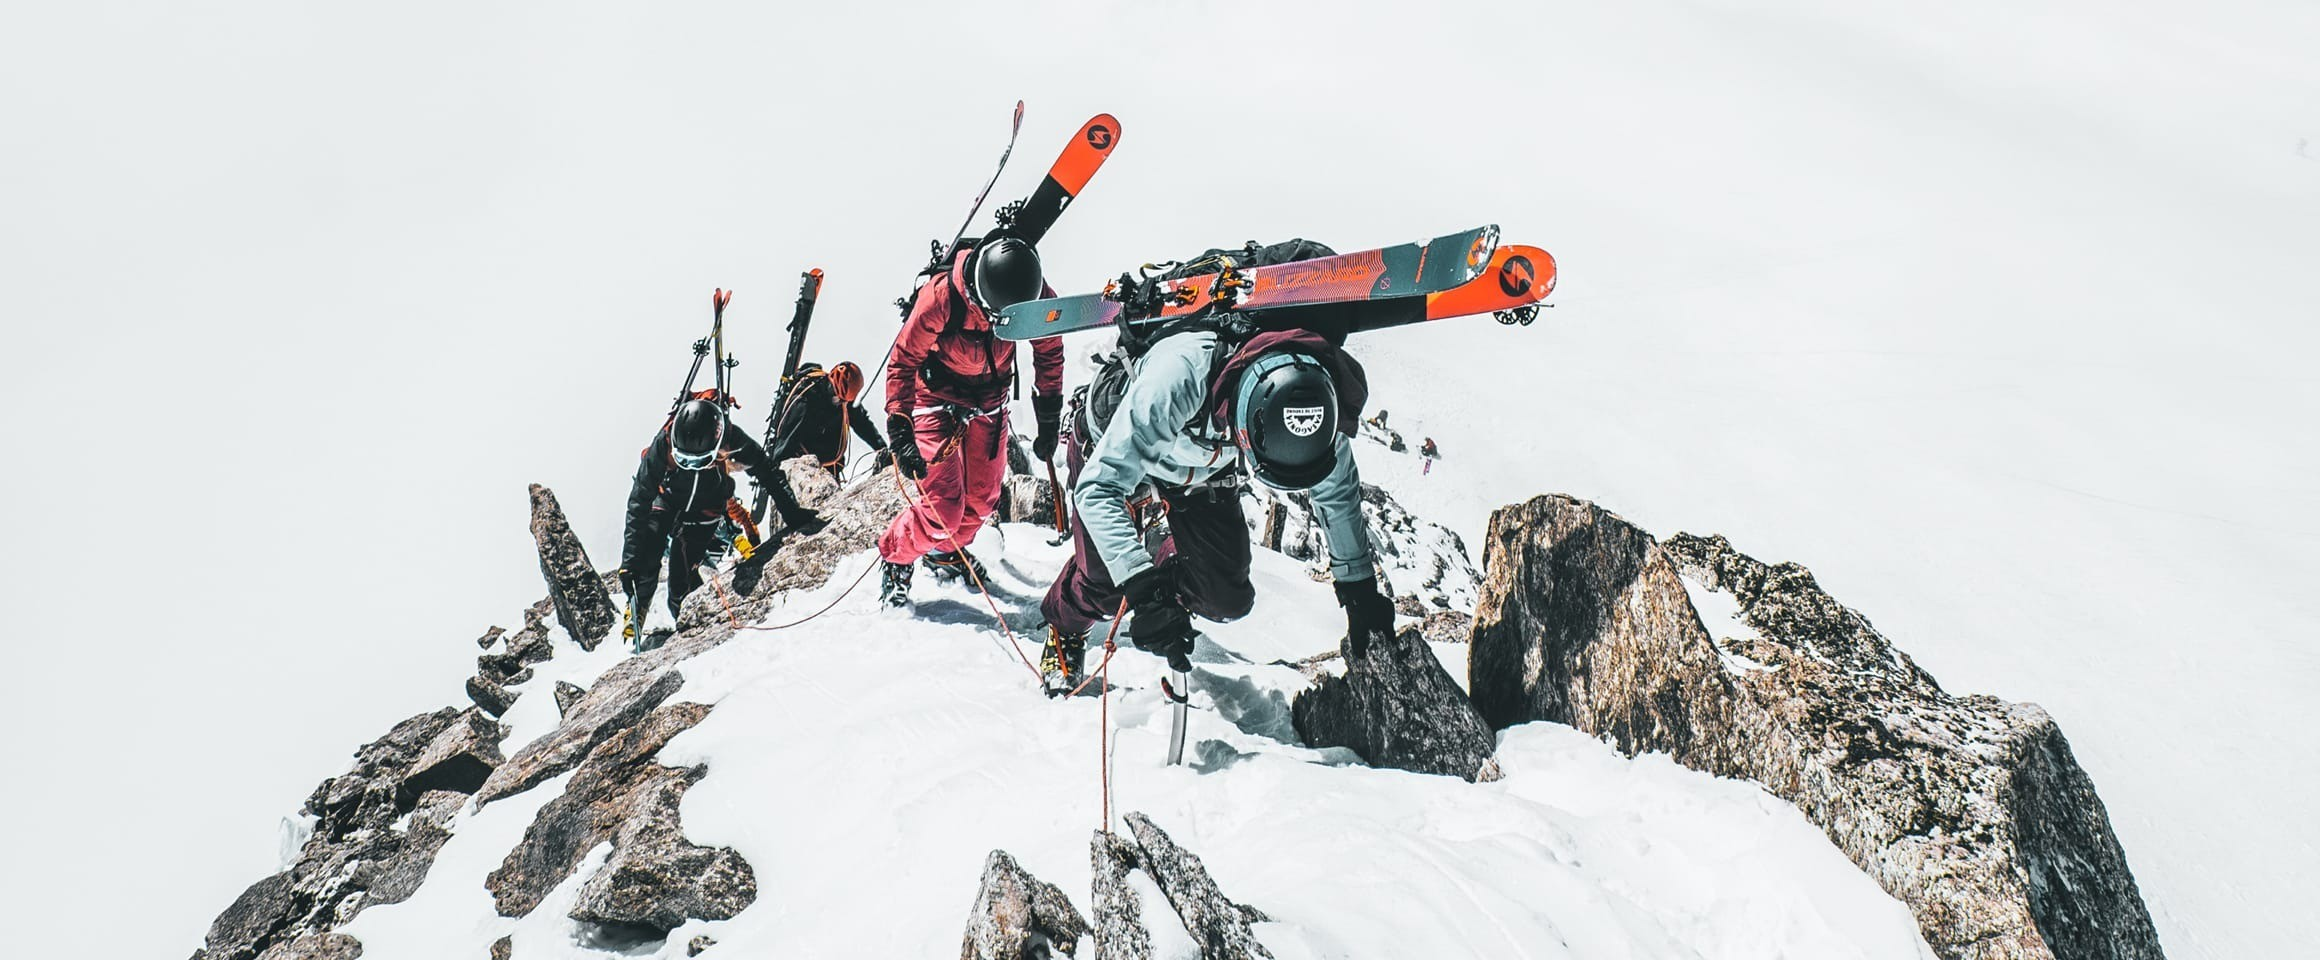 Backcountry - Touring Women